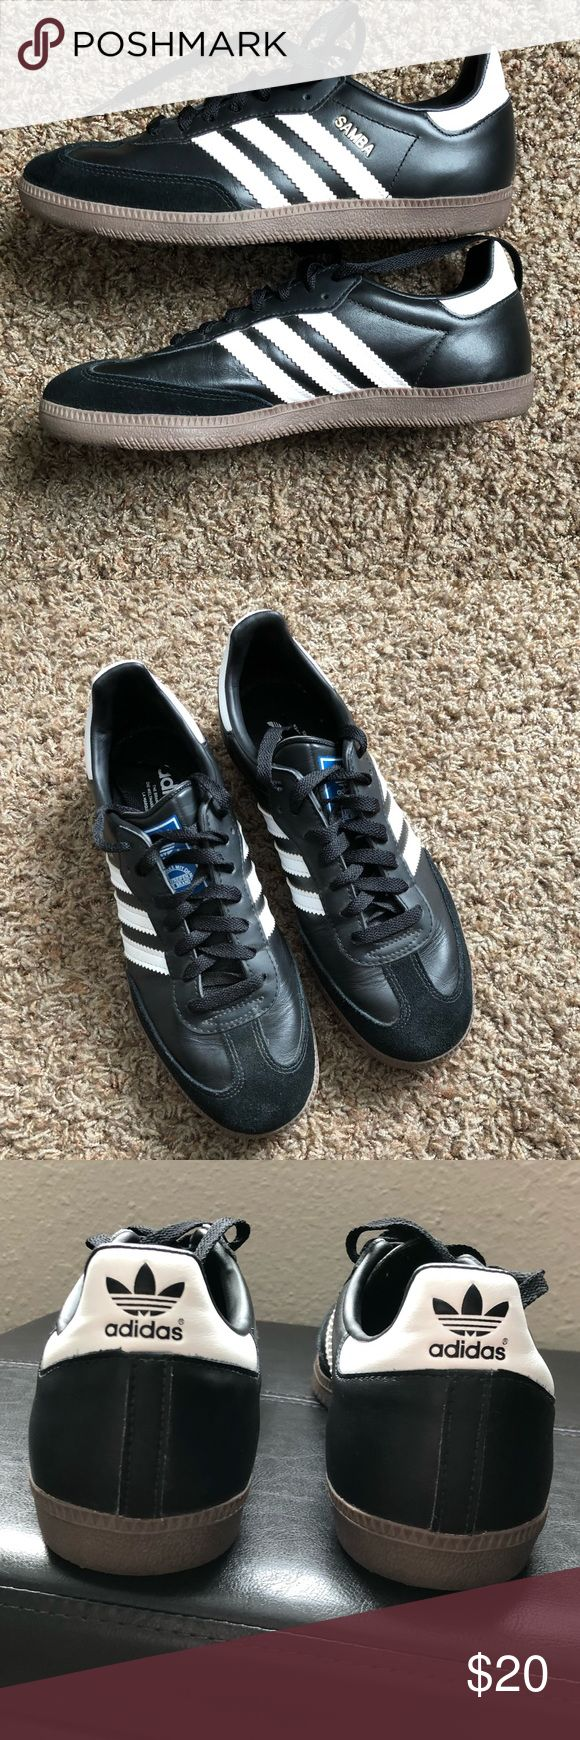 Adidas Samba Adidas Samba Classic Size 8 1/2 Perfect condition- only worn one   Will accept reasonable offers! adidas Shoes Athletic Shoes